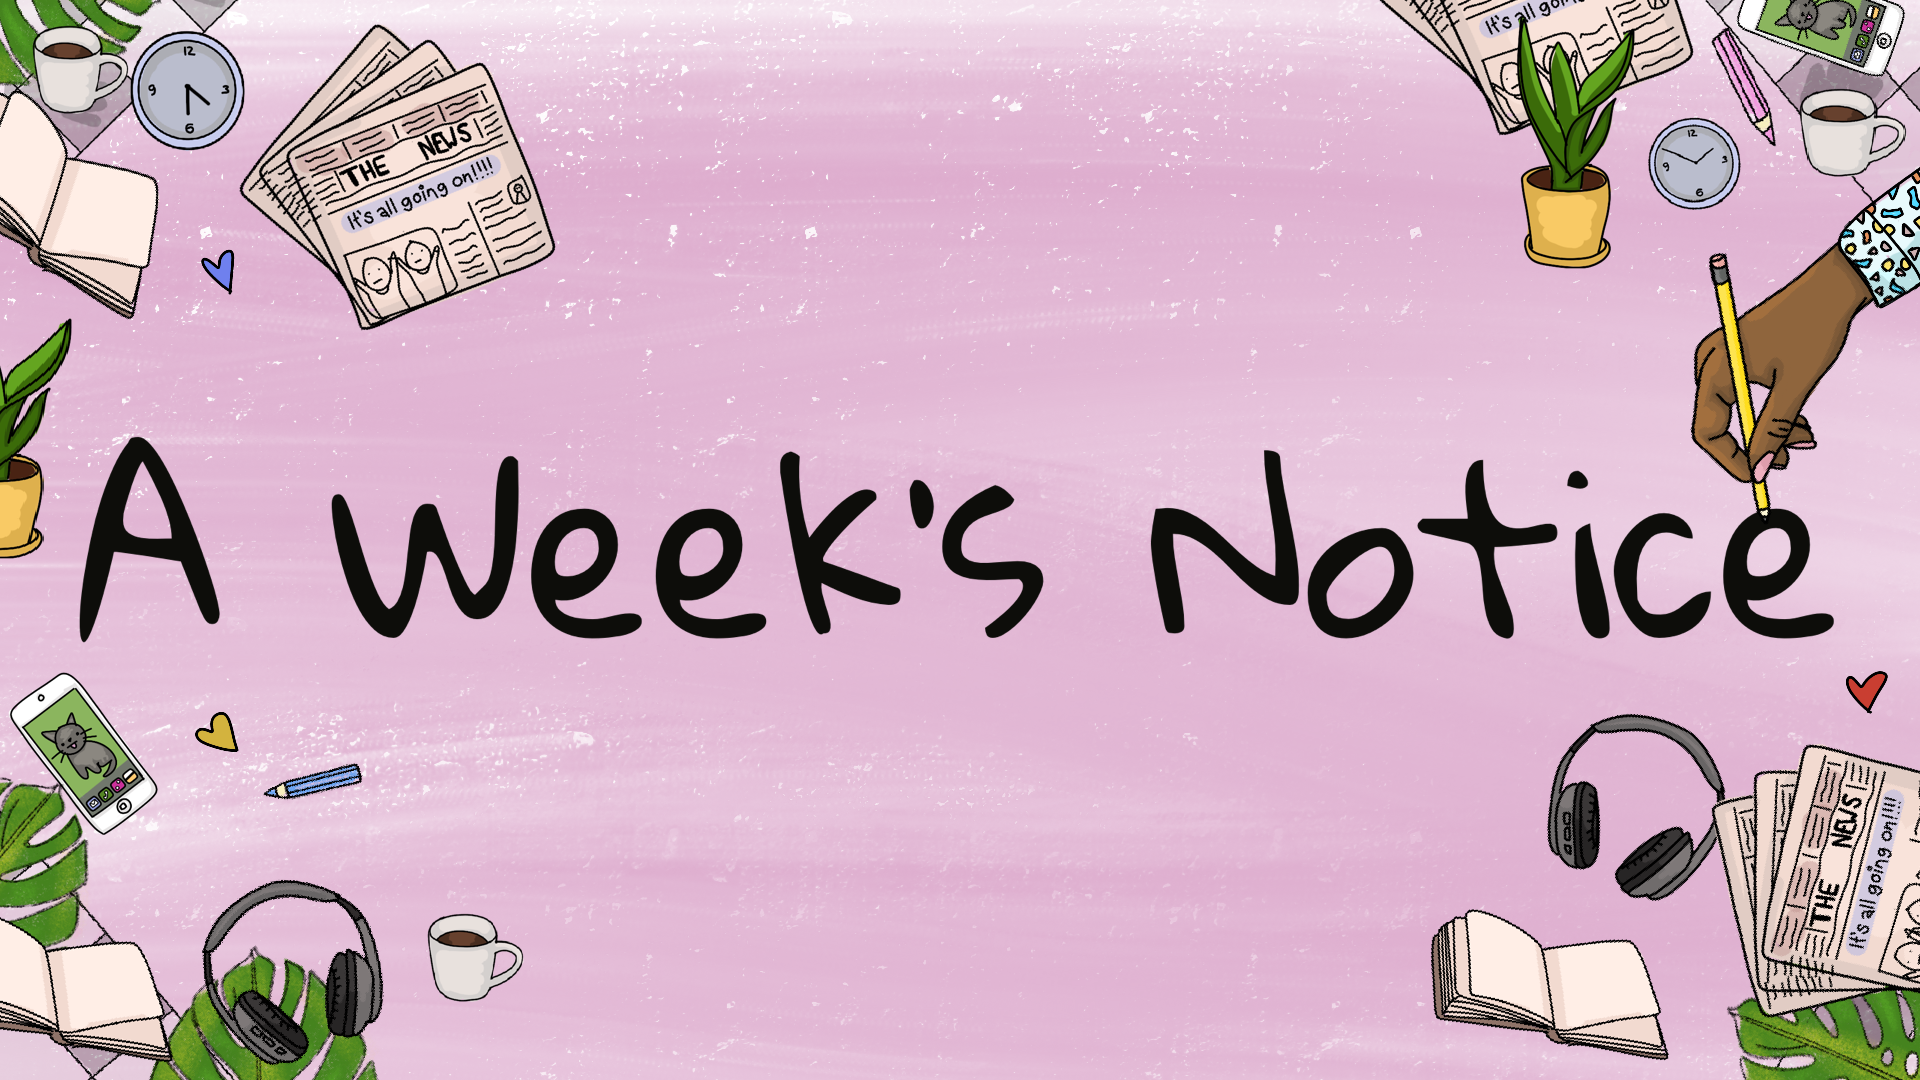 A Week's Notice. The words are surrounded by illustrations of books and other household objects